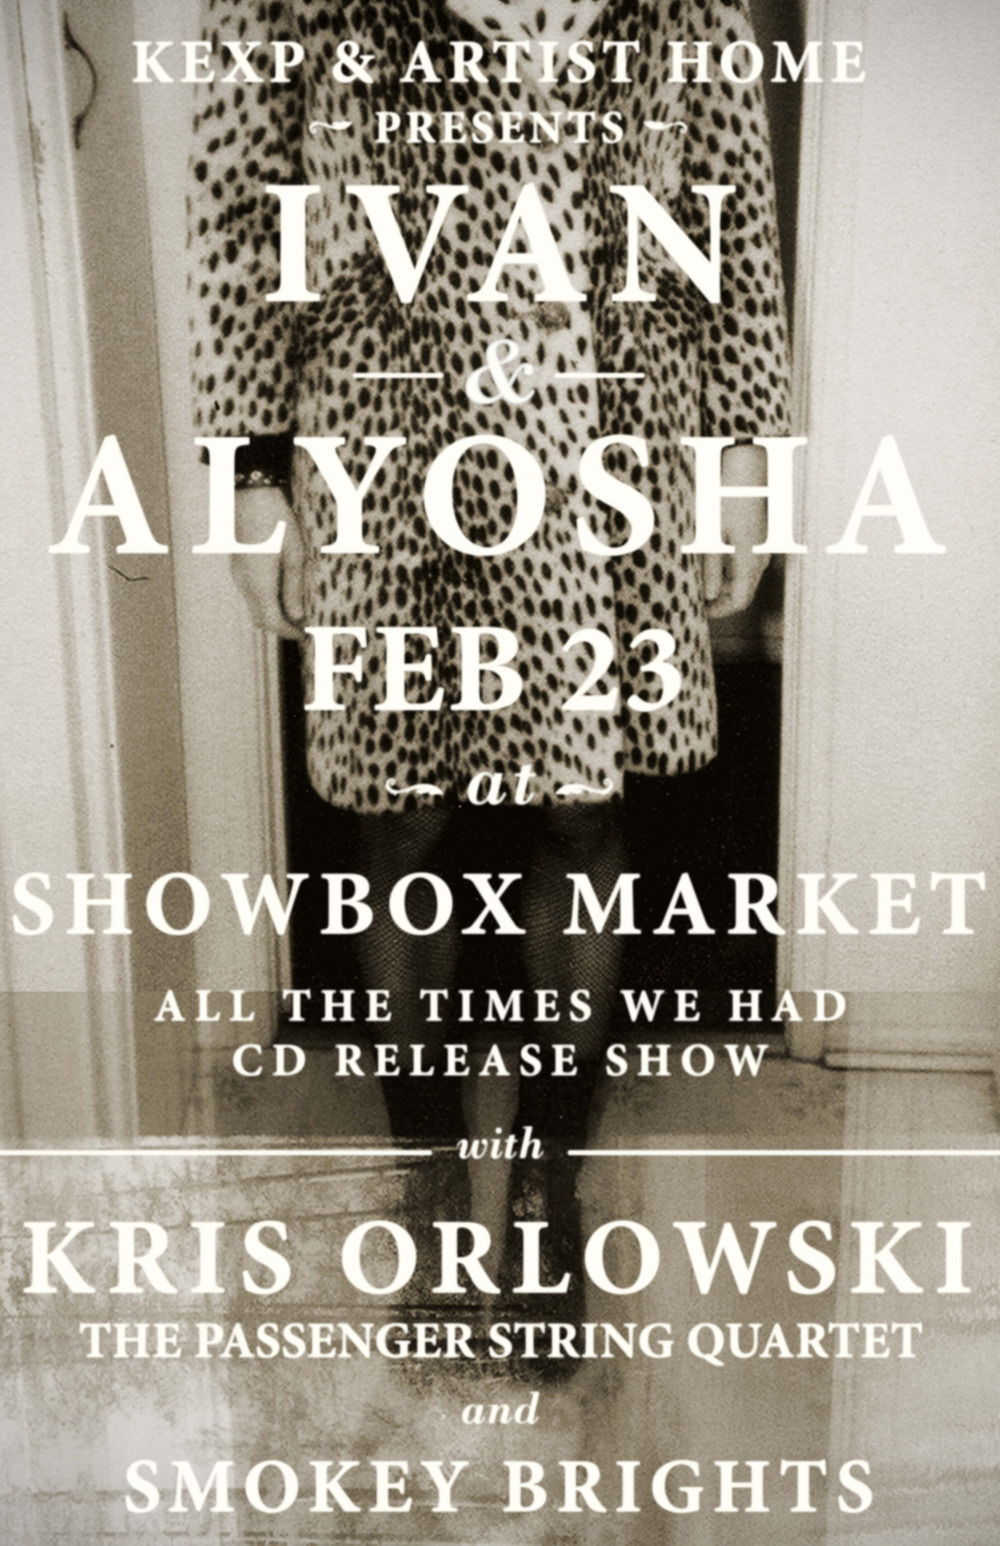 Only a few Tickets Left for Tomorrow's Showbox Show w/ Kris Orlowski / Smokey Brights / Passenger String Quartet! Get 'em here!  http://bit.ly/IvanAlyoshaShowbox